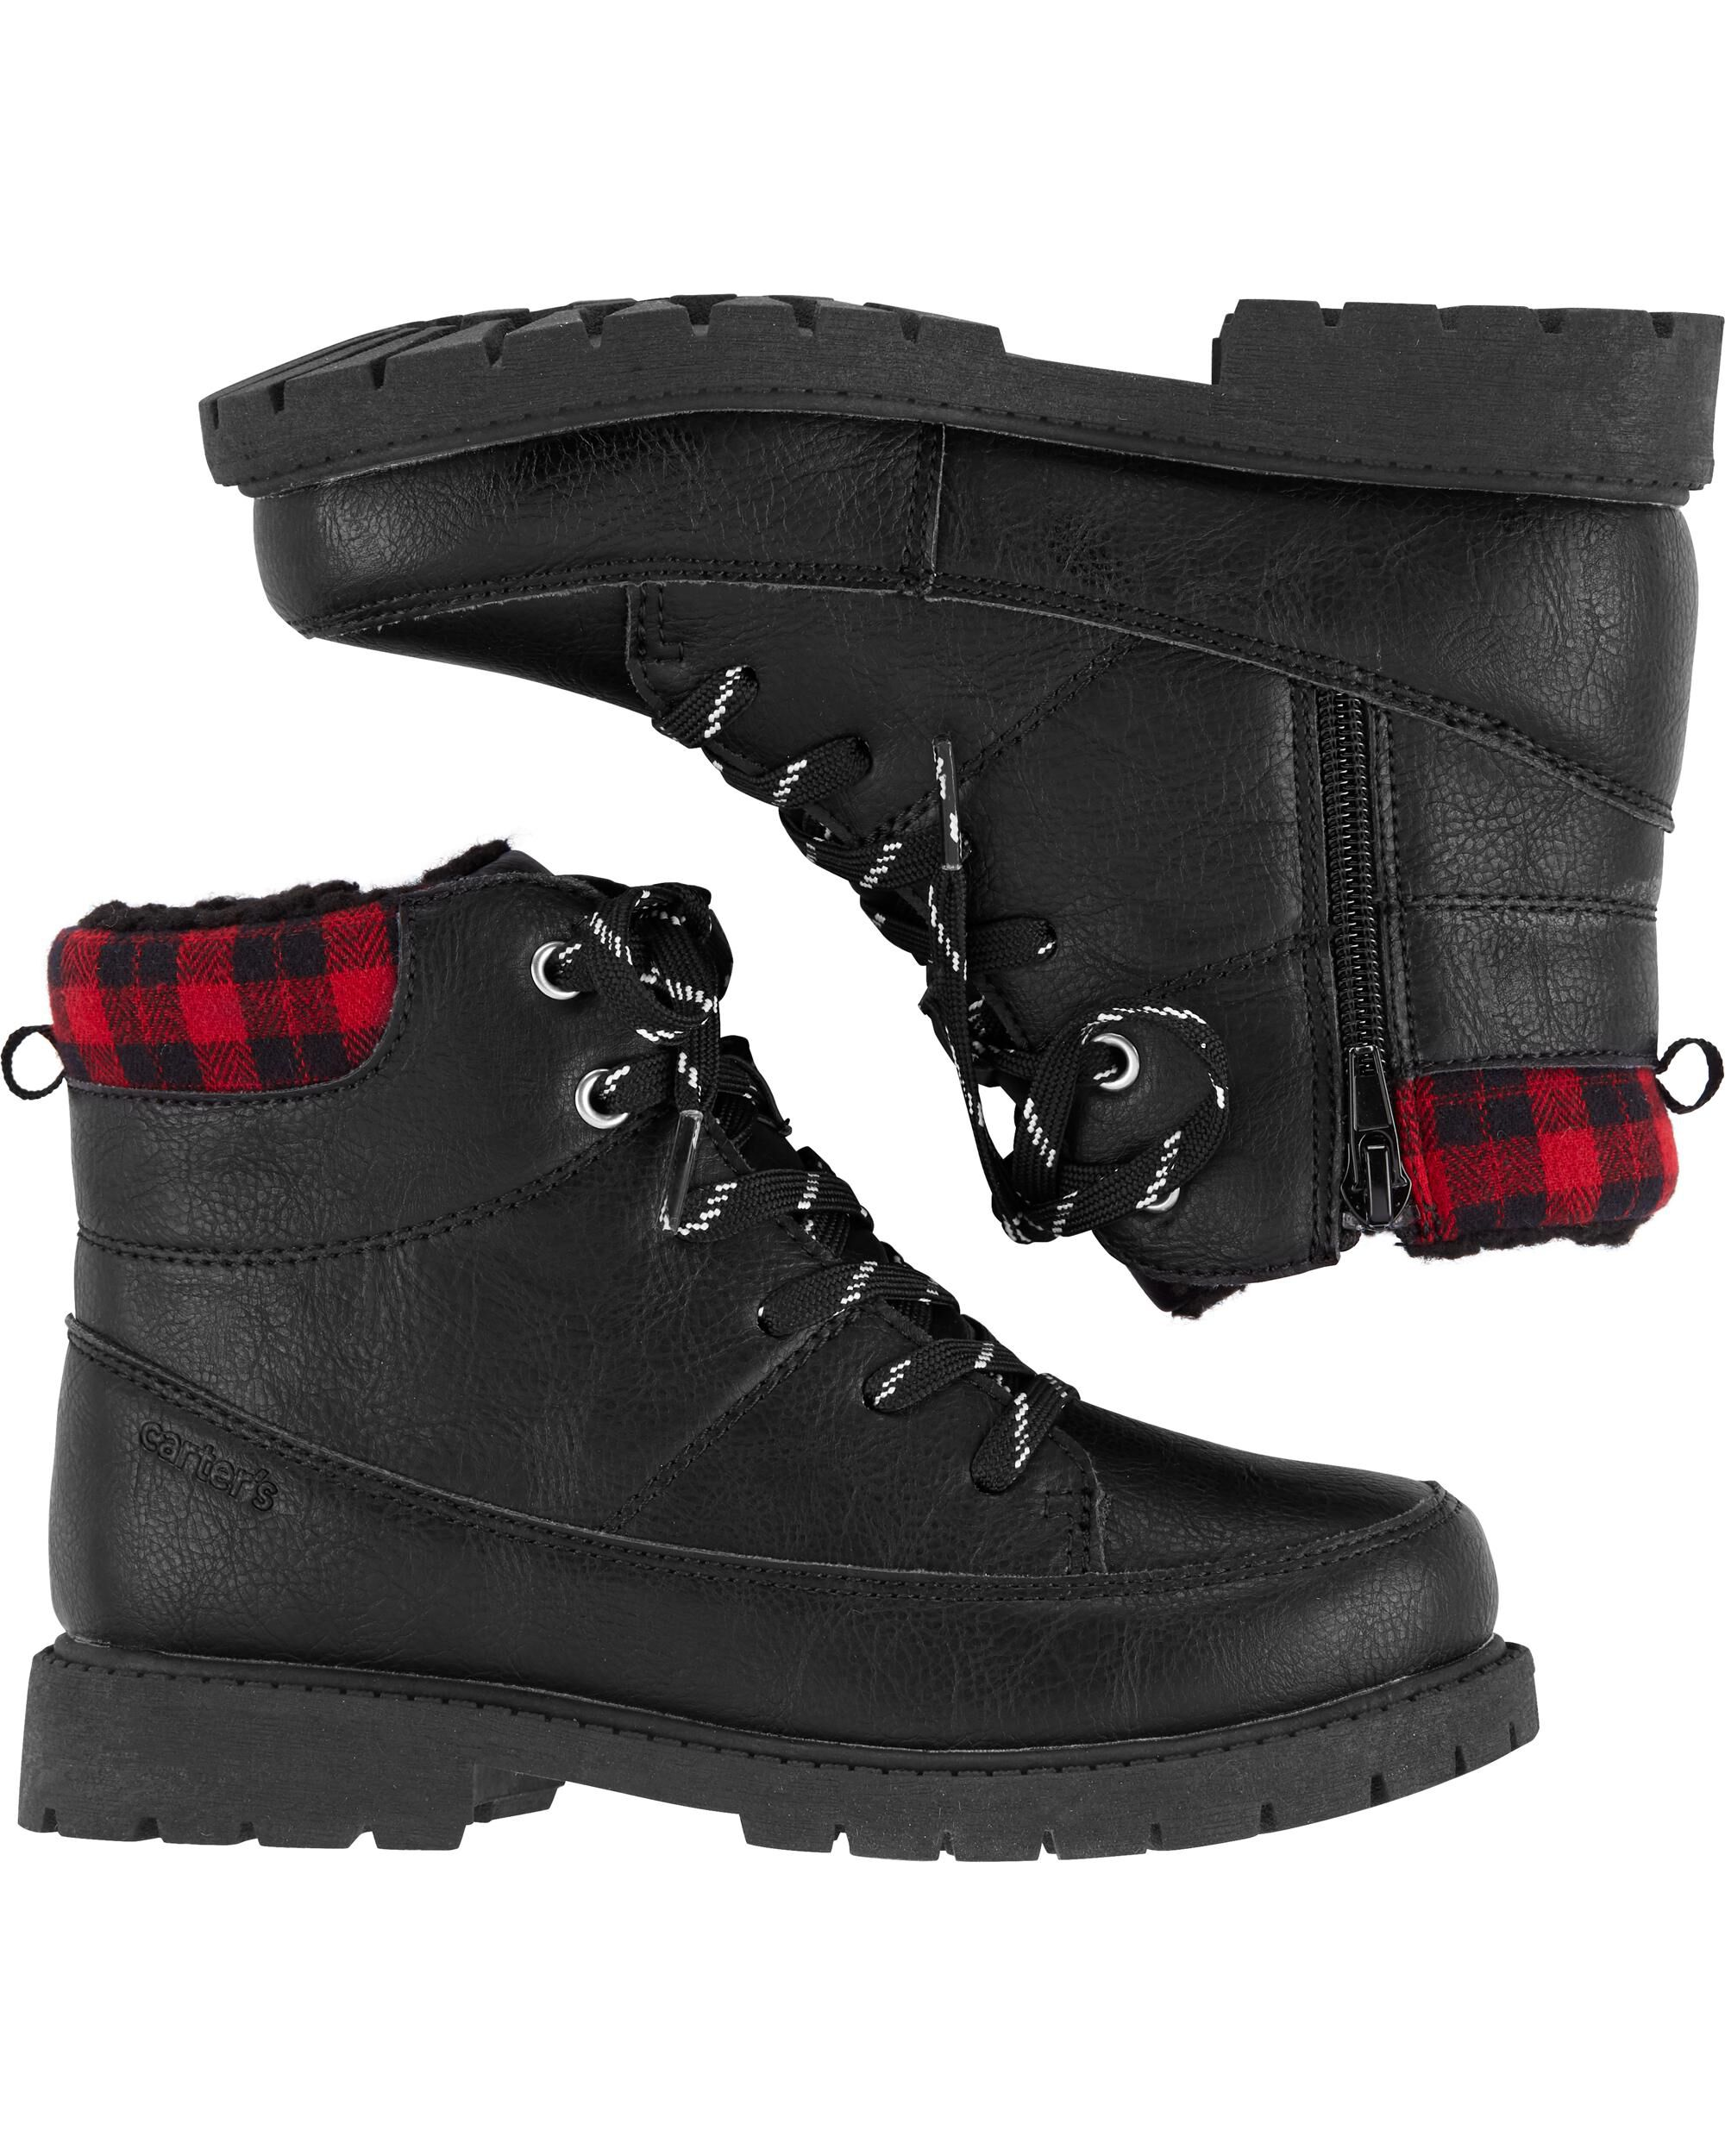 *CLEARANCE* Carter's High Top Boots